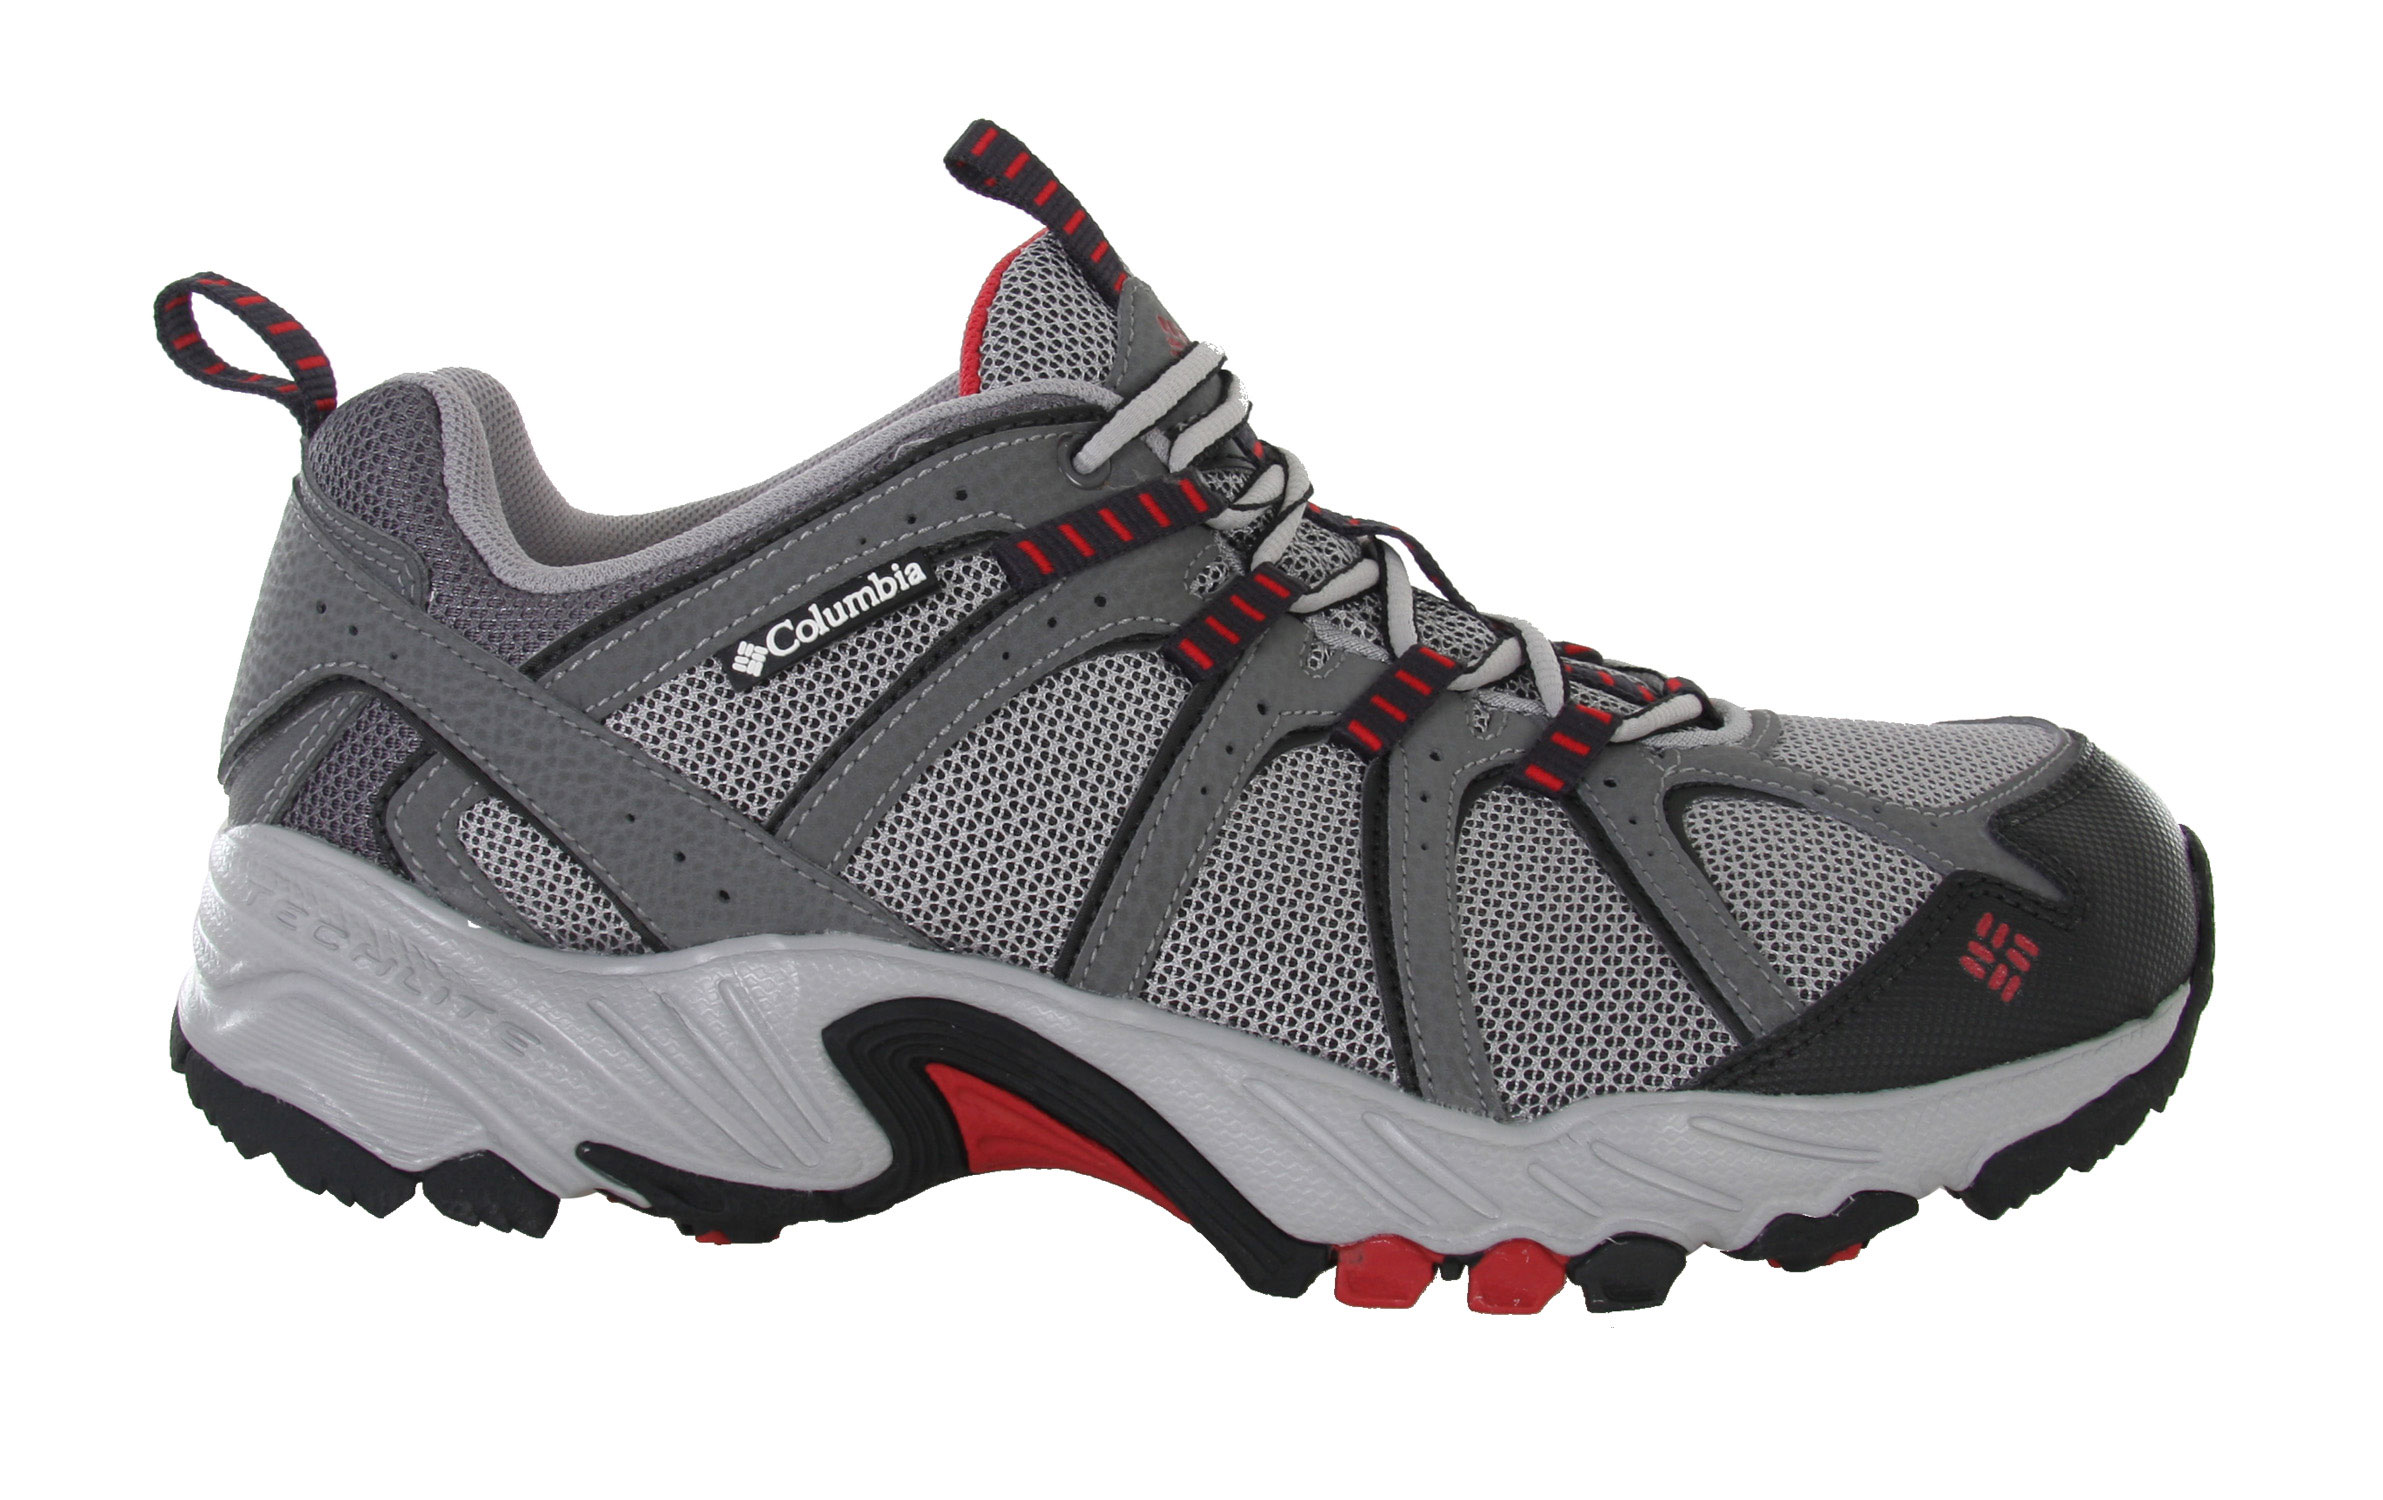 Camp and Hike A fantastic value, the Kaibab is the go-anywhere, do-anything answer to your everyday adventure footwear needs. This shoe is flexible, light and well-supported - perfect for trail running and hiking but low-profile enough for general everyday use. The breathable mesh upper helps you stay cool when you're on the move and a gusseted tongue keeps out unwanted debris. Ample padding protects and cushions your feet while a rugged non-marking outsole with a trail-specific design provides stability as you move over uneven surfaces. Key Features of the Columbia Kaibab Hiking Shoes: Breathable mesh upper supported by light and flexible overlays. Gusseted tongue to keep out unwanted debris Molded rubberized EVA with nylex top cover Compression molded EVA Nylon shank Non-marking Omni-Grip rubber compound with a rugged trail design Weight: Size 9, 1/2 pair = 12.6 oz/360g - $38.95